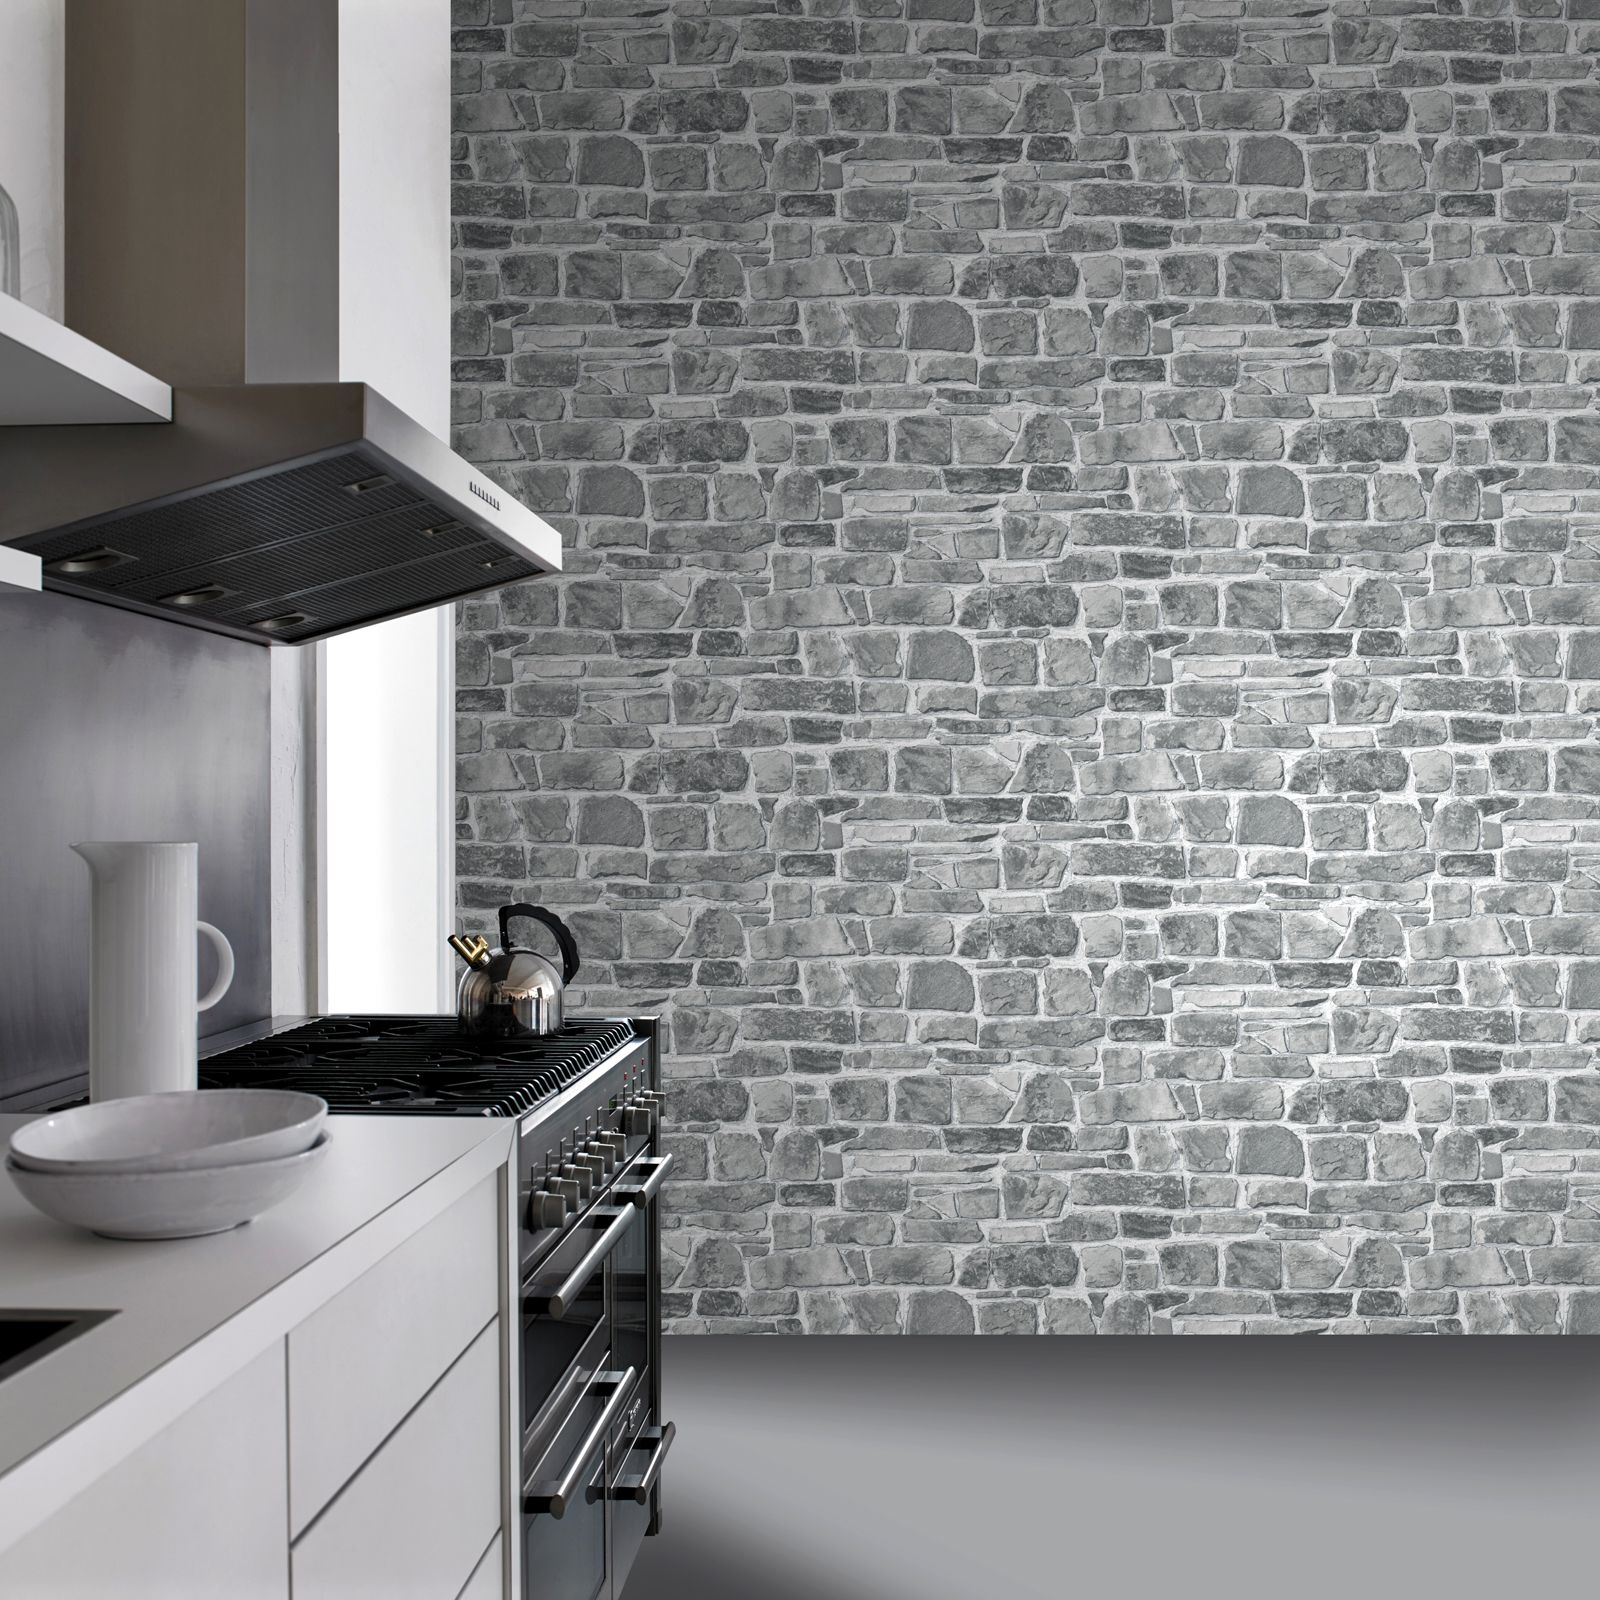 Feature Wall Light Grey : GREY STONE WALL WALLPAPER - RASCH 265620 - NEW FEATURE WALL BRICK